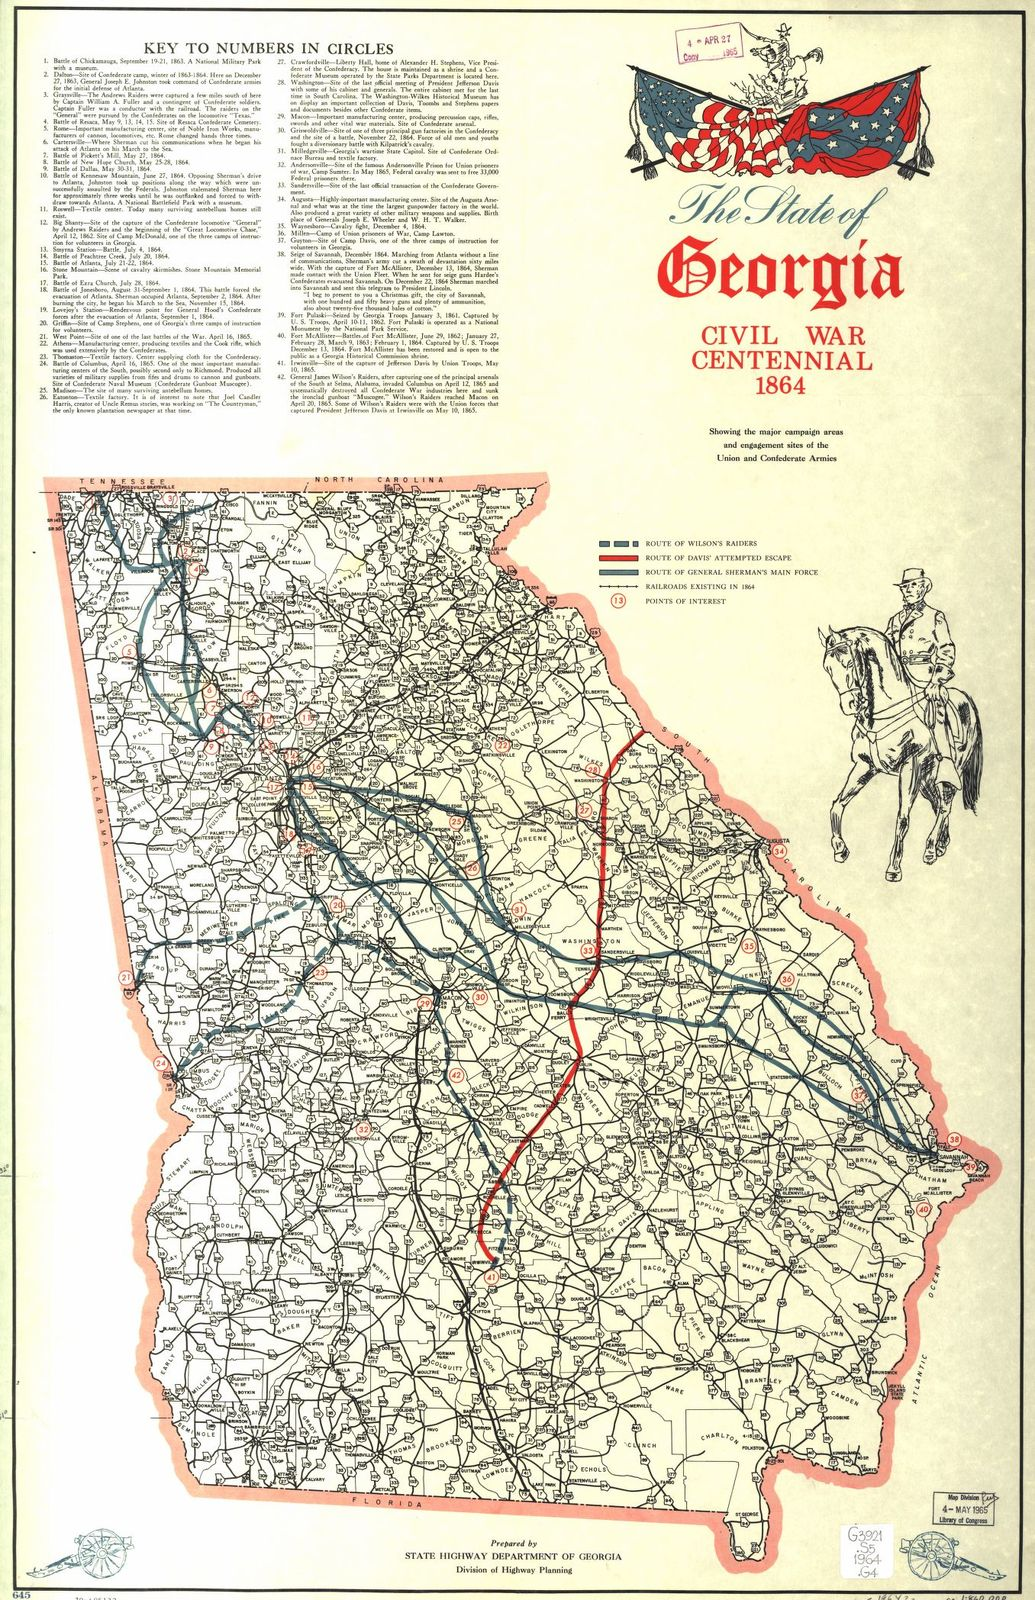 The State of Georgia, Civil War Centennial, 1864 : showing the major on